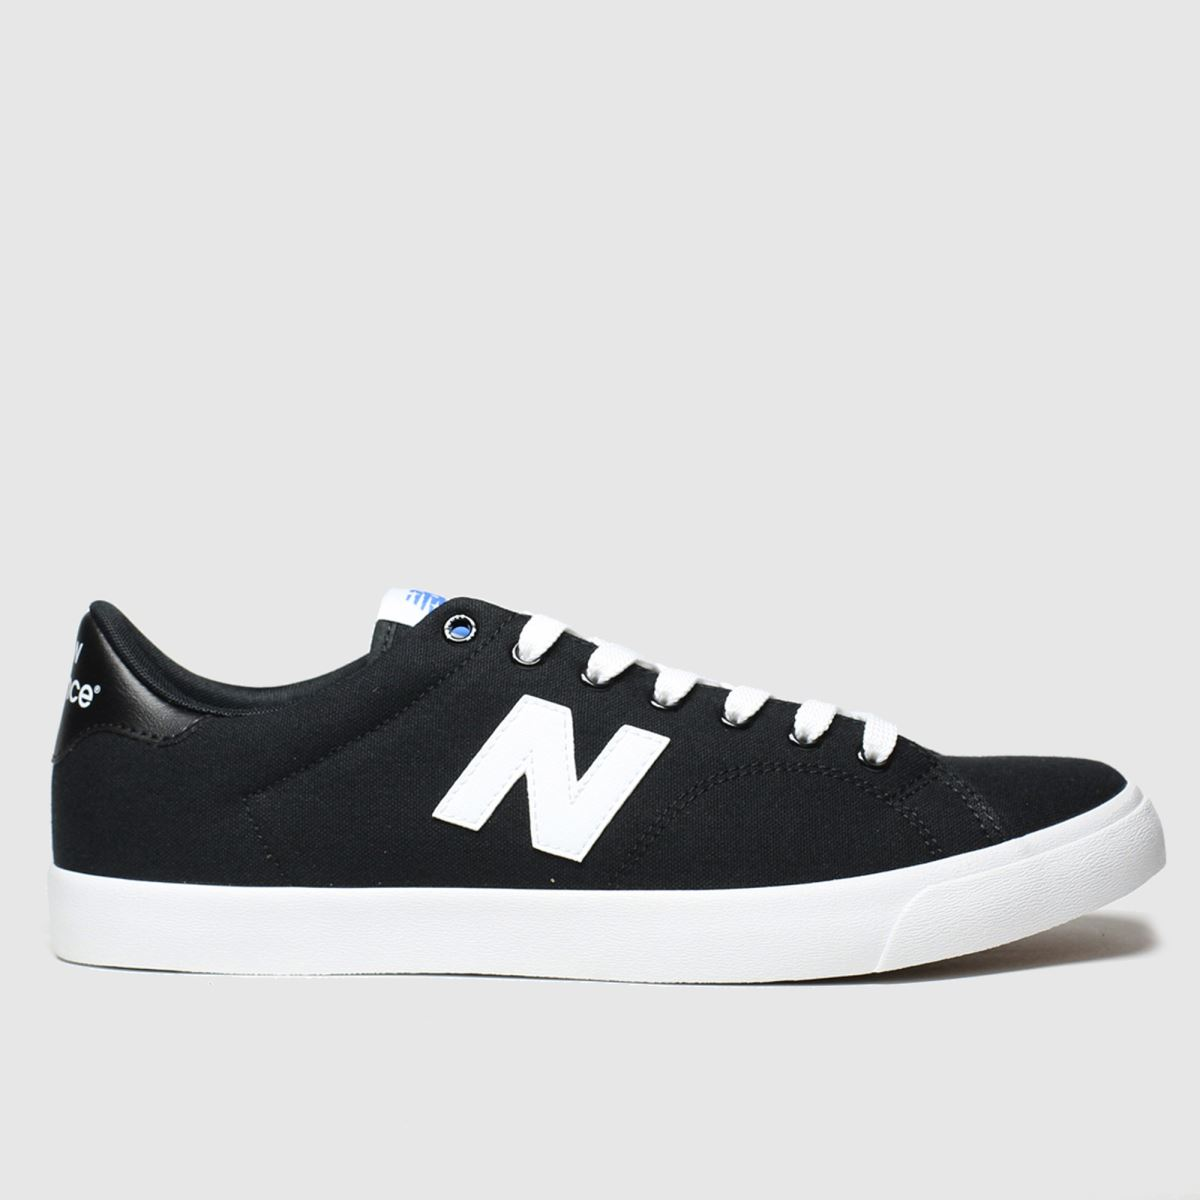 New Balance Black & White 210 All Coasts Trainers